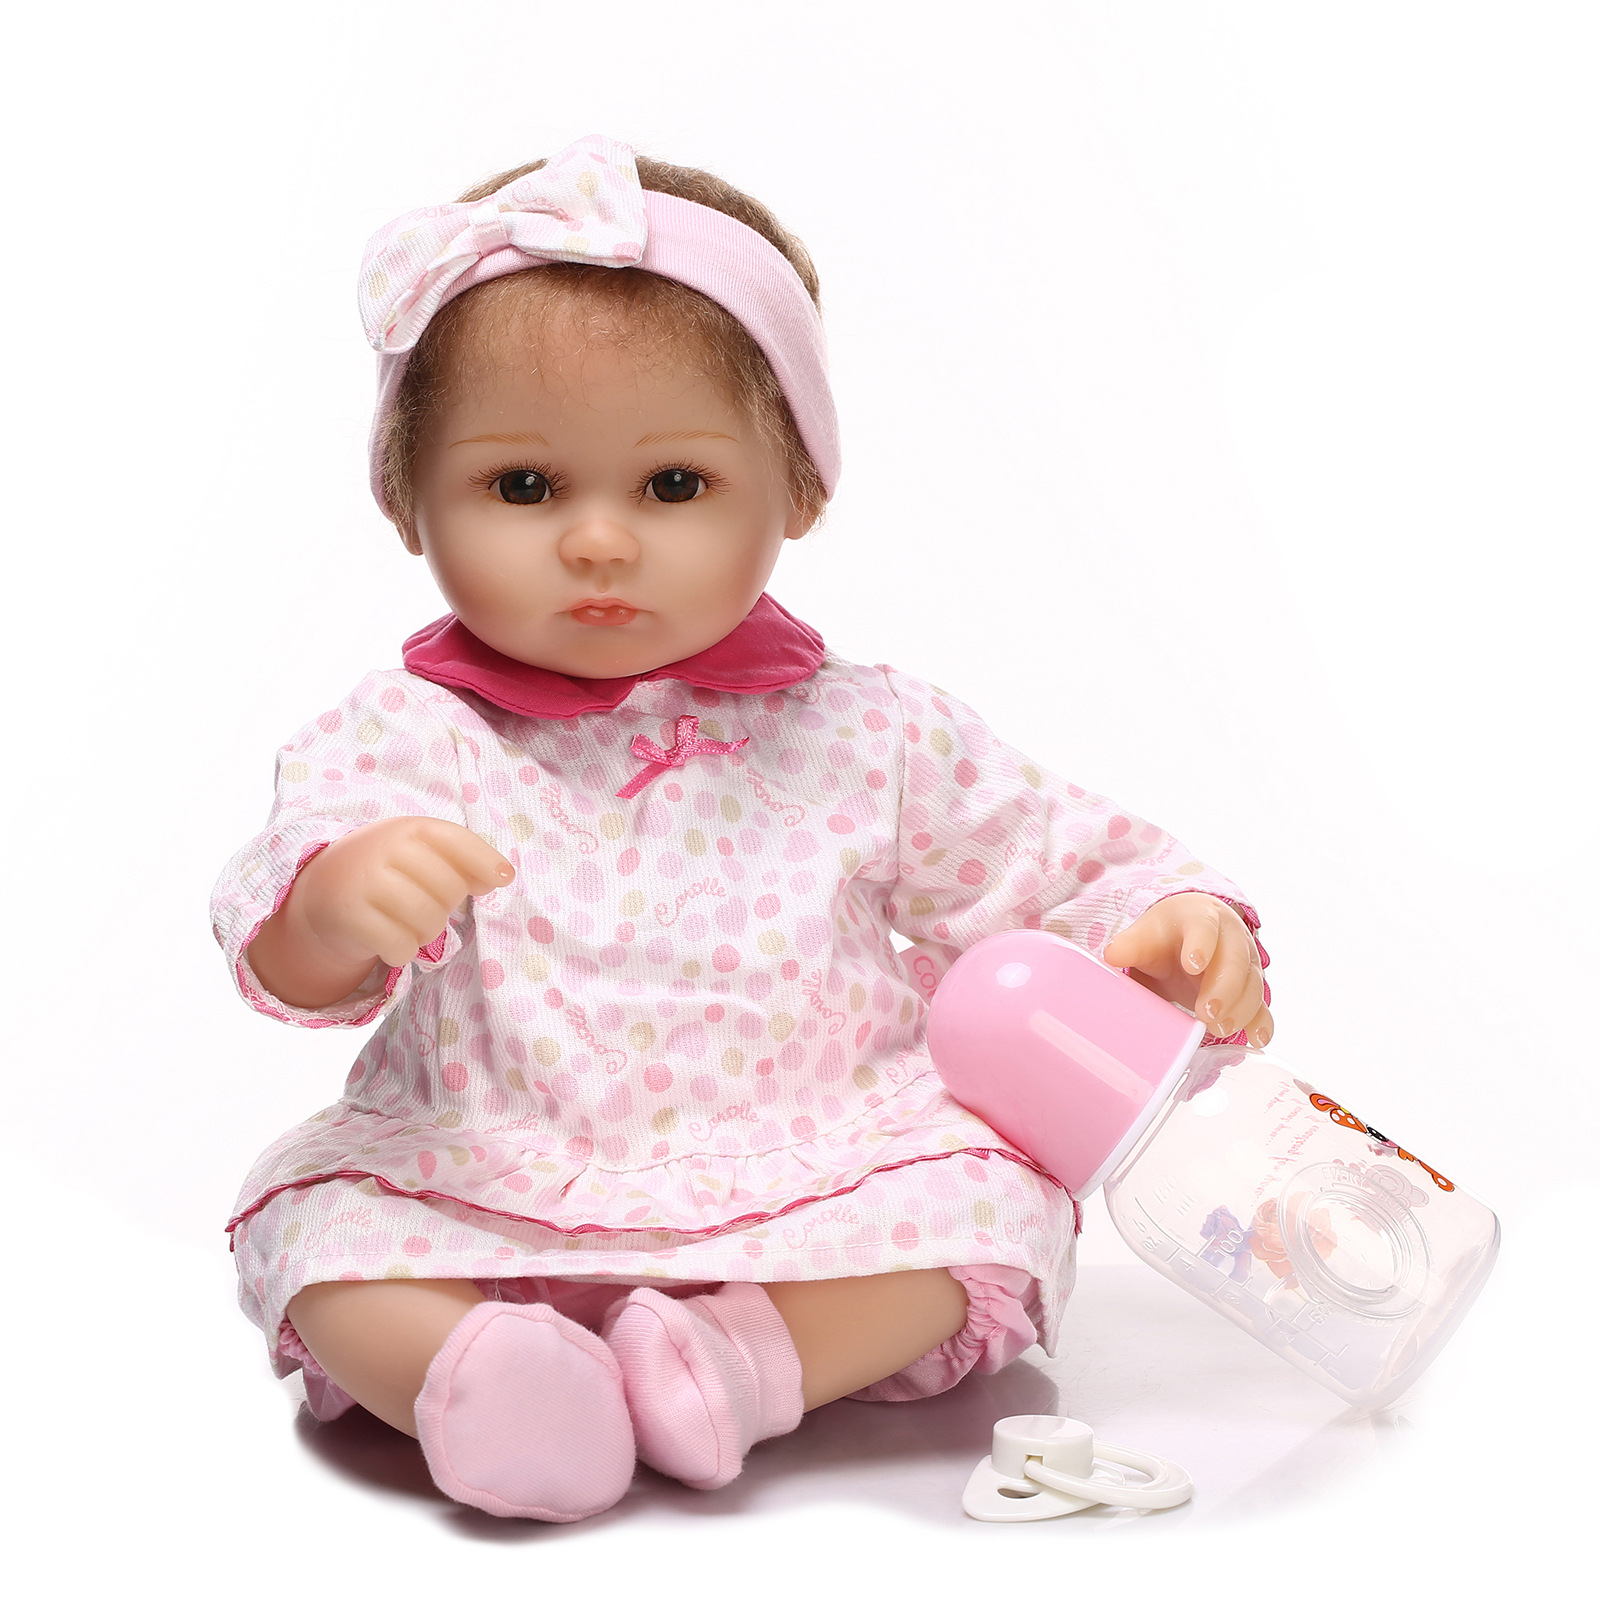 40cm Soft Silica gel Doll Reborn Baby Appease Doll Lifelike Babies play play house toy for Children's Christmas Birthday Gift soft silica gel doll 57cm reborn baby appease doll lifelike babies play play house toy for children s christmas birthday gift